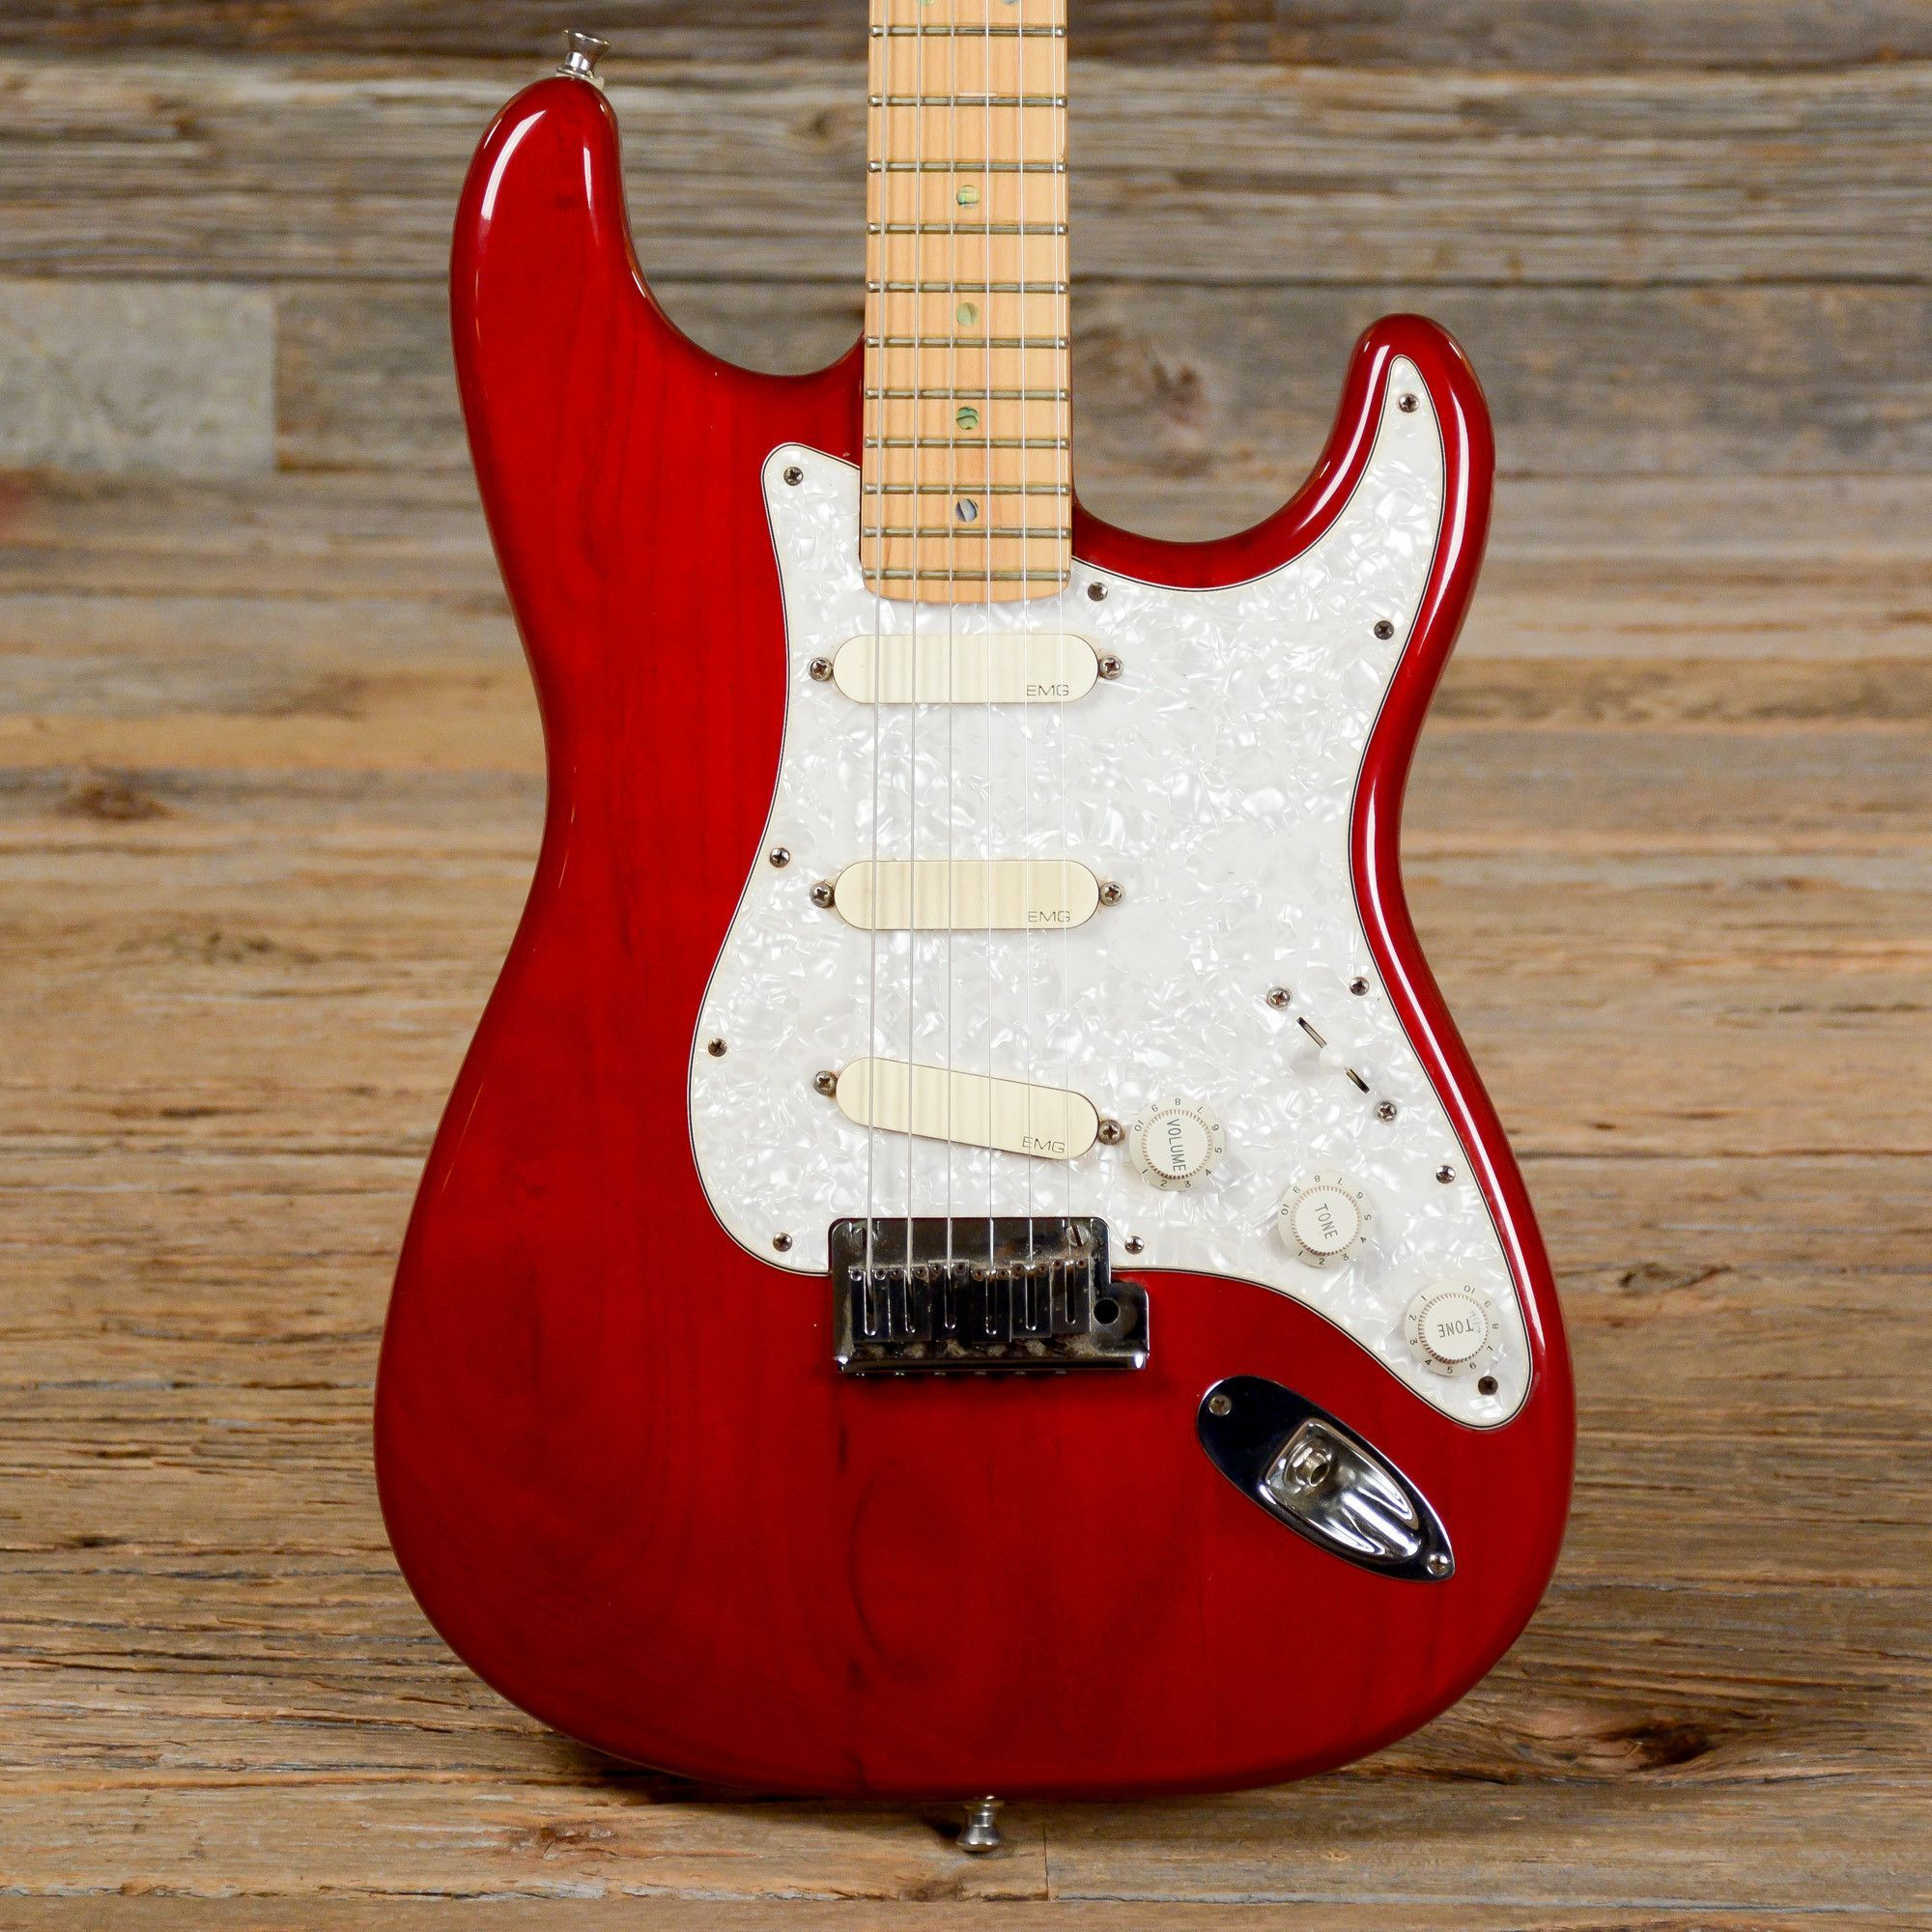 Fender American Deluxe Stratocaster Red 1998 (s244)